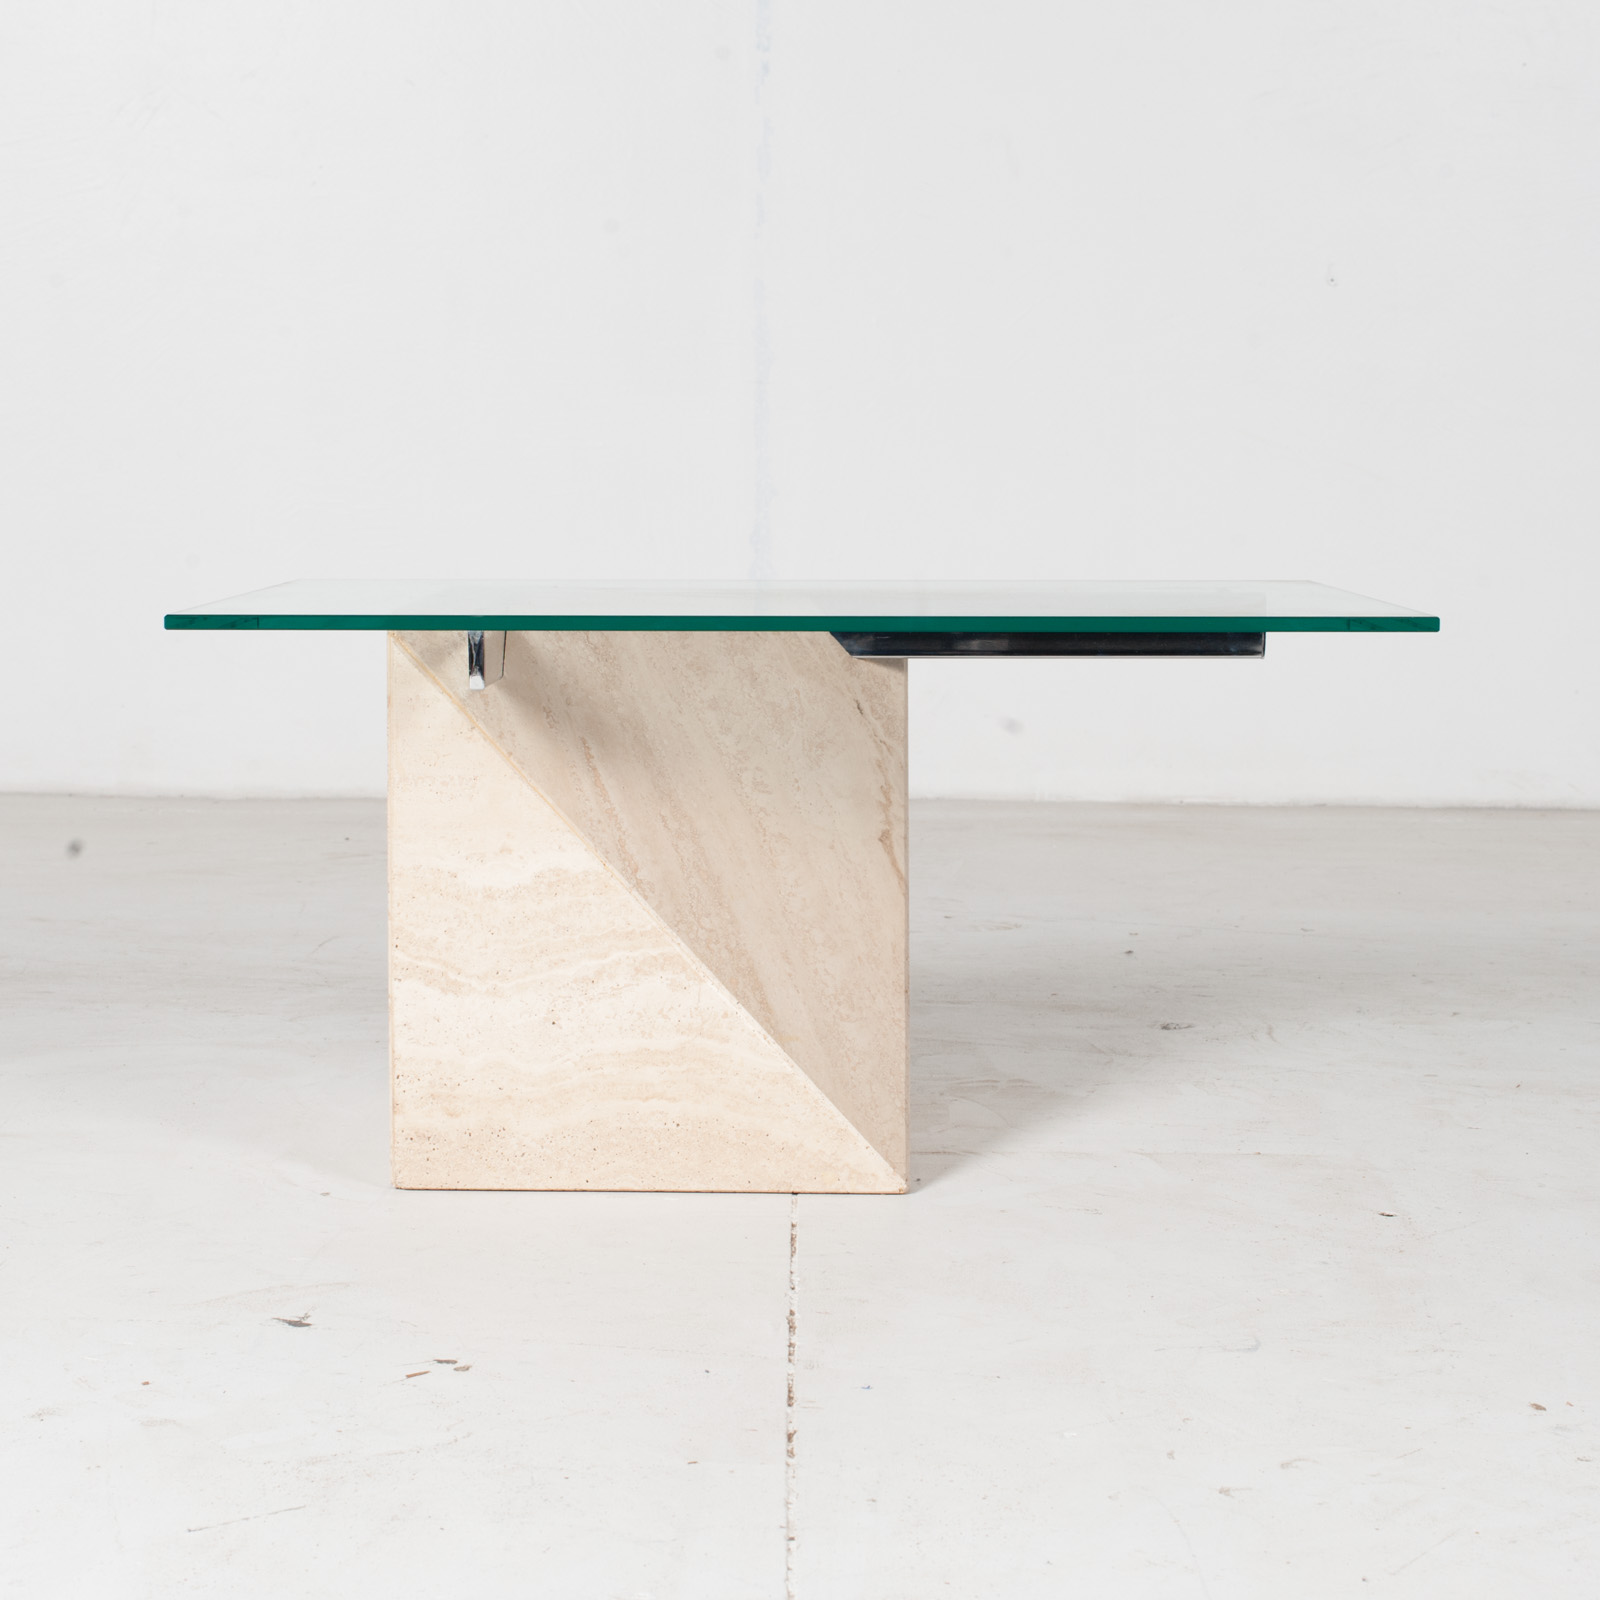 Coffee Table By Artedi In Travertine, Cantilevered Glass And Chrome, 1970s, Italy1